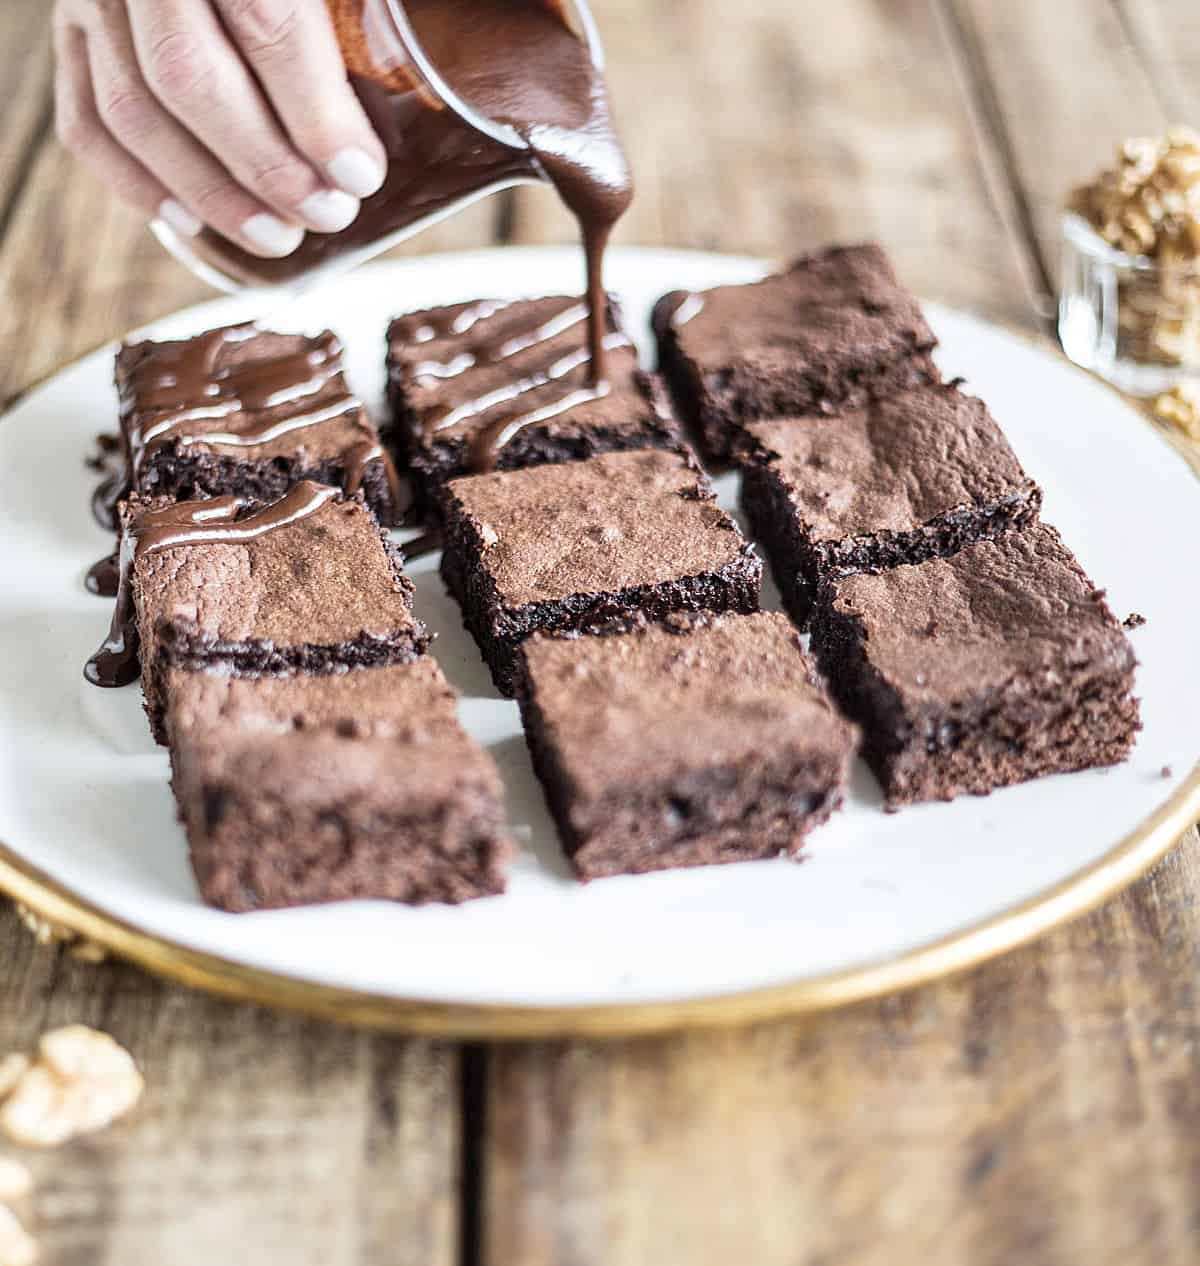 Pouring chocolate sauce over brownie squares on white plate on a wooden table